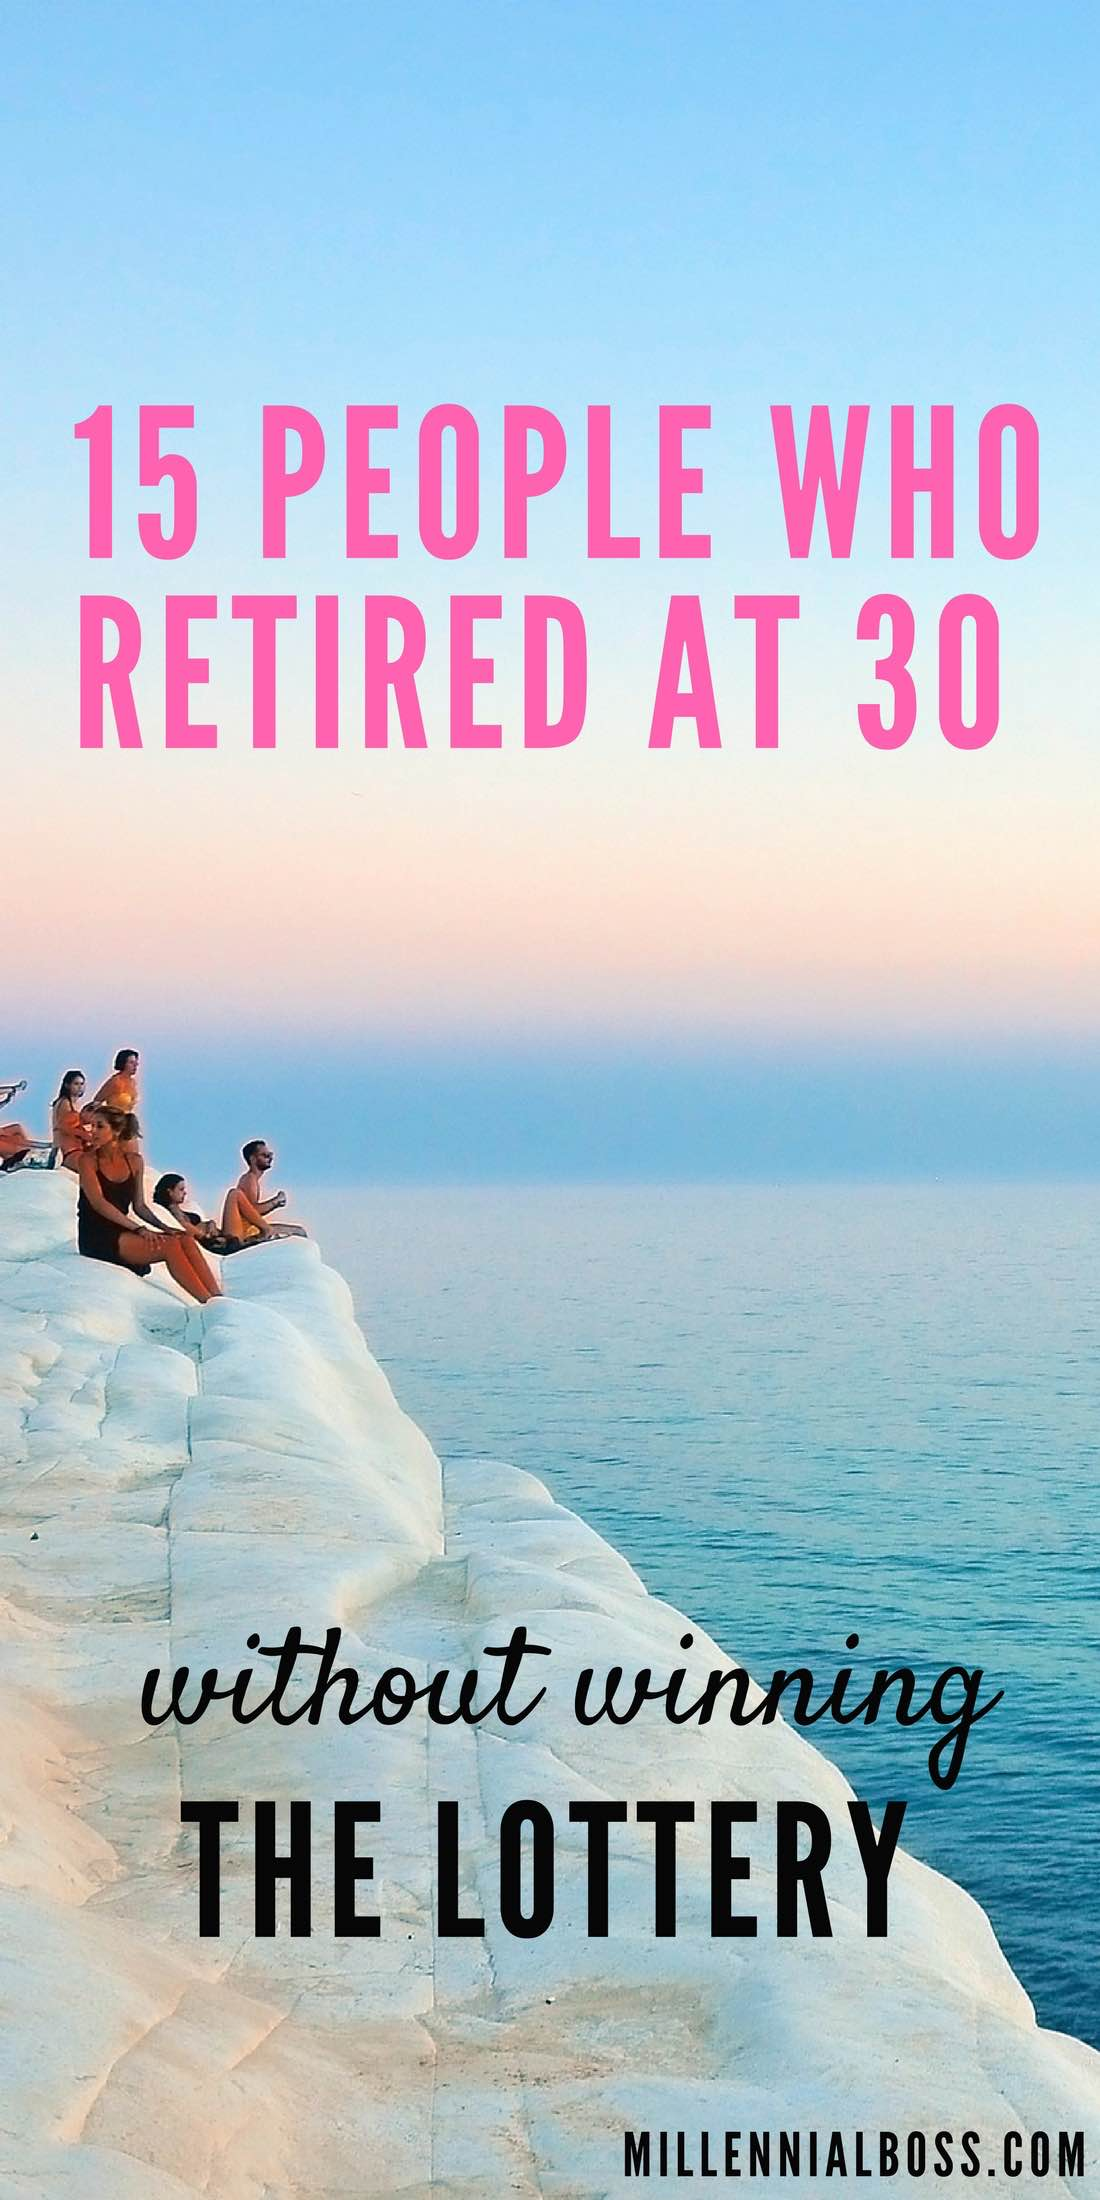 15 People Who Retired in Their Twenties and Thirties (without winning the lottery!)